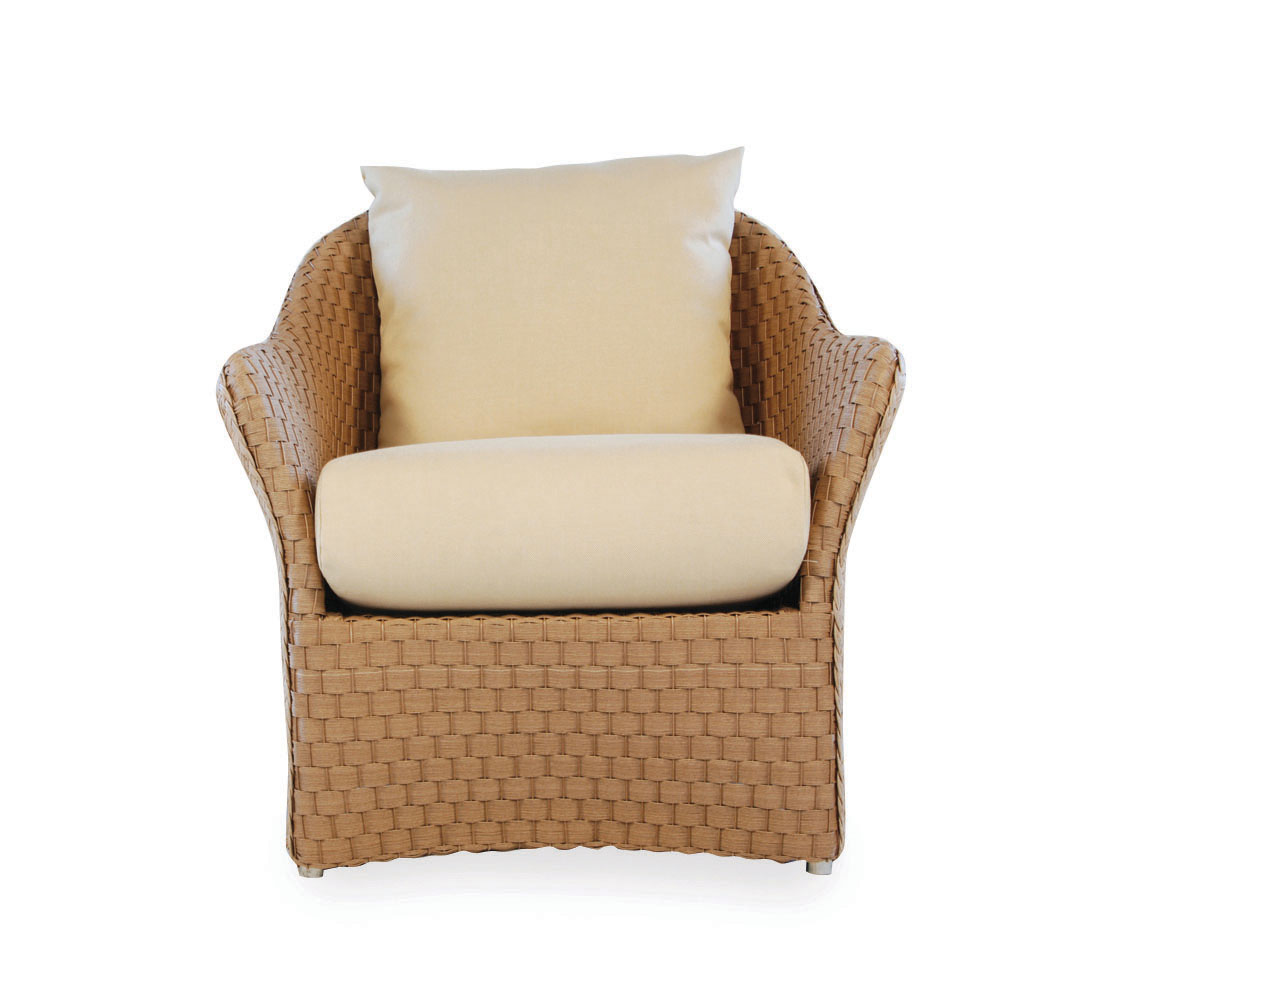 Weekend Retreat Lounge Chair 10 x 10 Weave